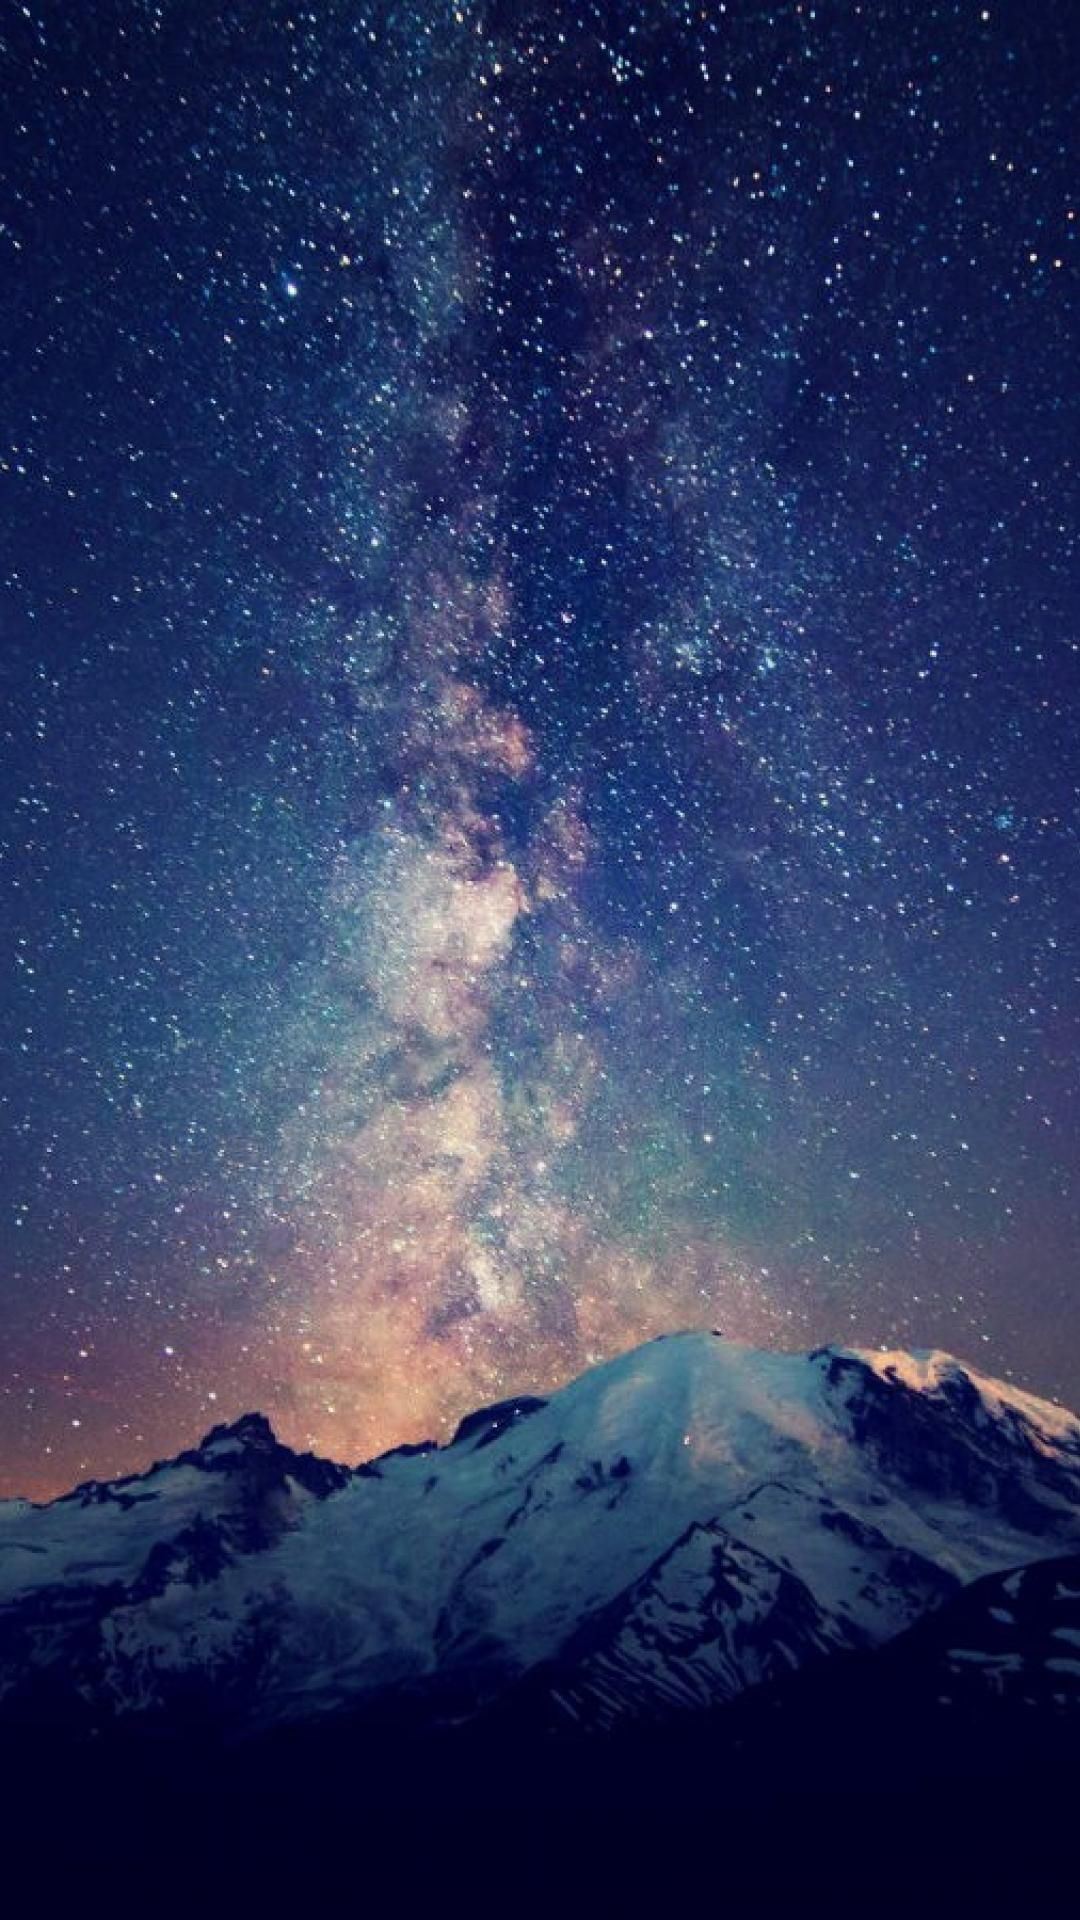 Milky Way In The Night Sky Iphone Wallpaper Milky Way Galaxy Wallpaper Night Skies